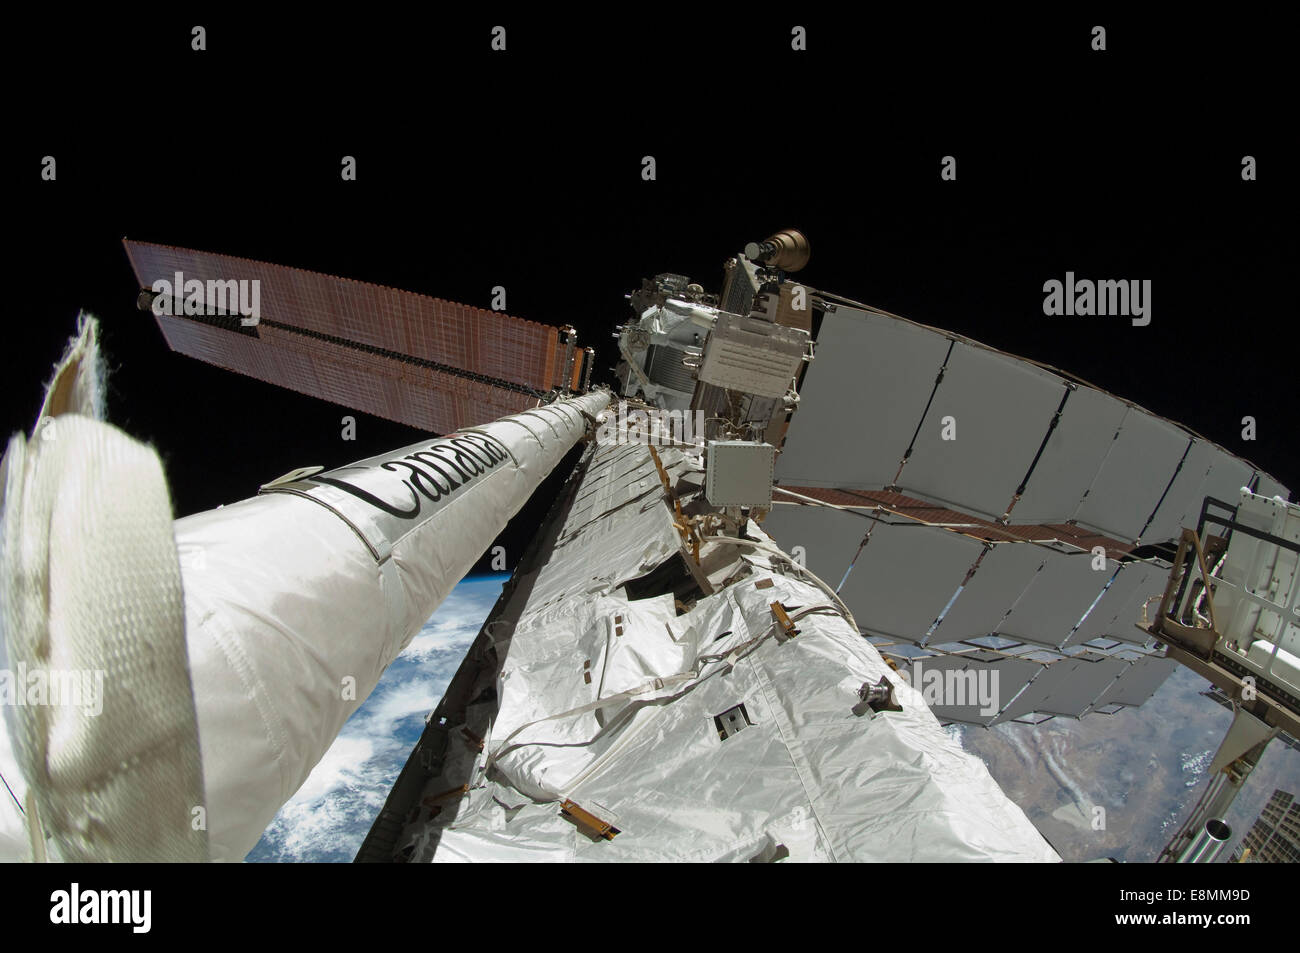 May 27, 2011 - Fish-eye lens view of the newly-attached 50-foot-long Enhanced International Space Station Boom Assembly. - Stock Image